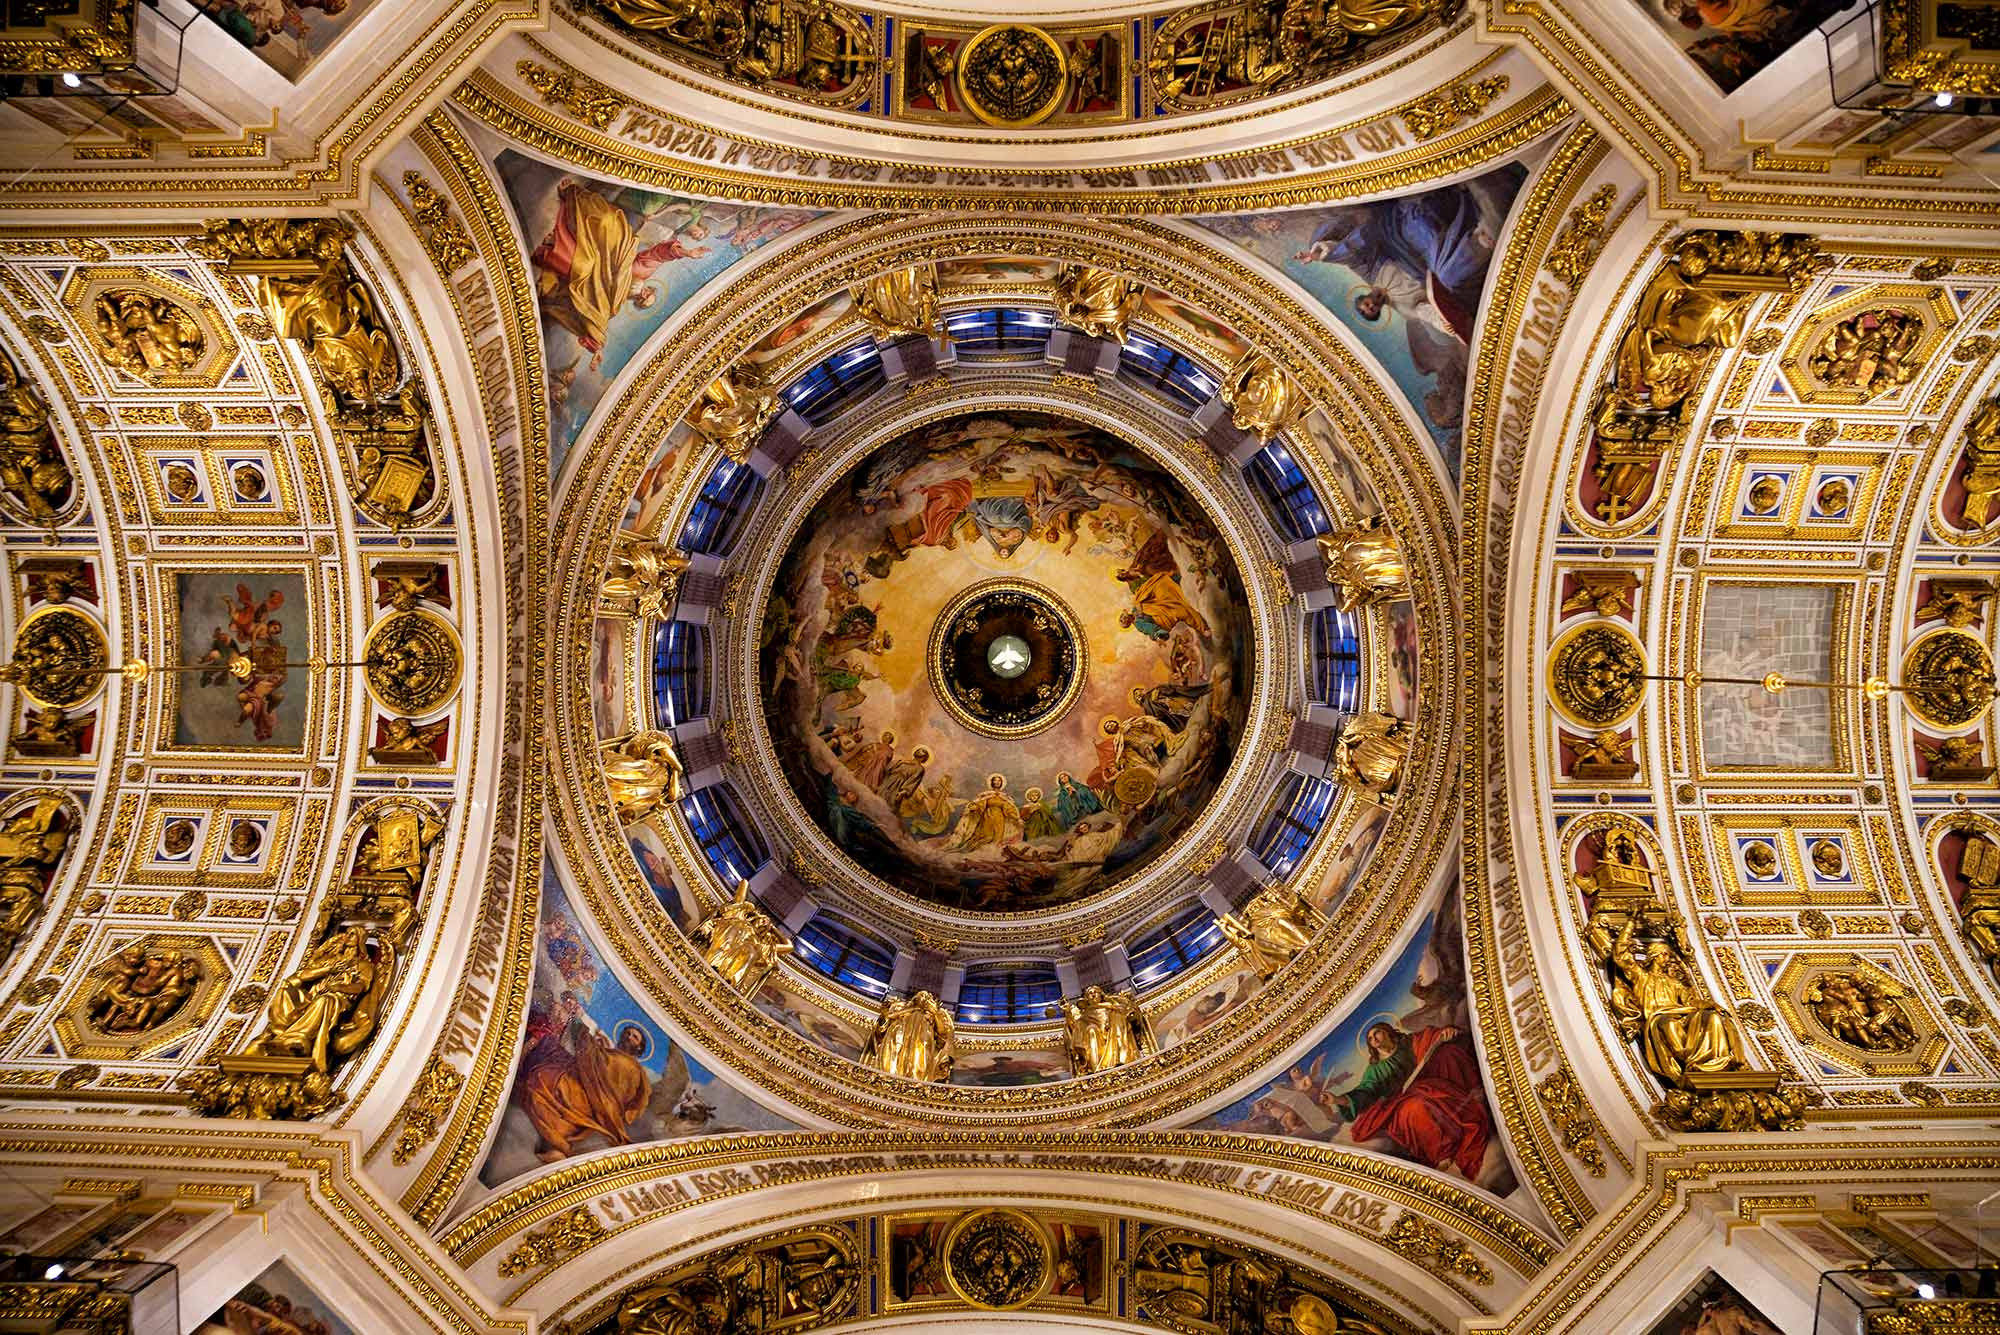 The stunning interior of St. Isaac's Cathedral, St Petersburg.